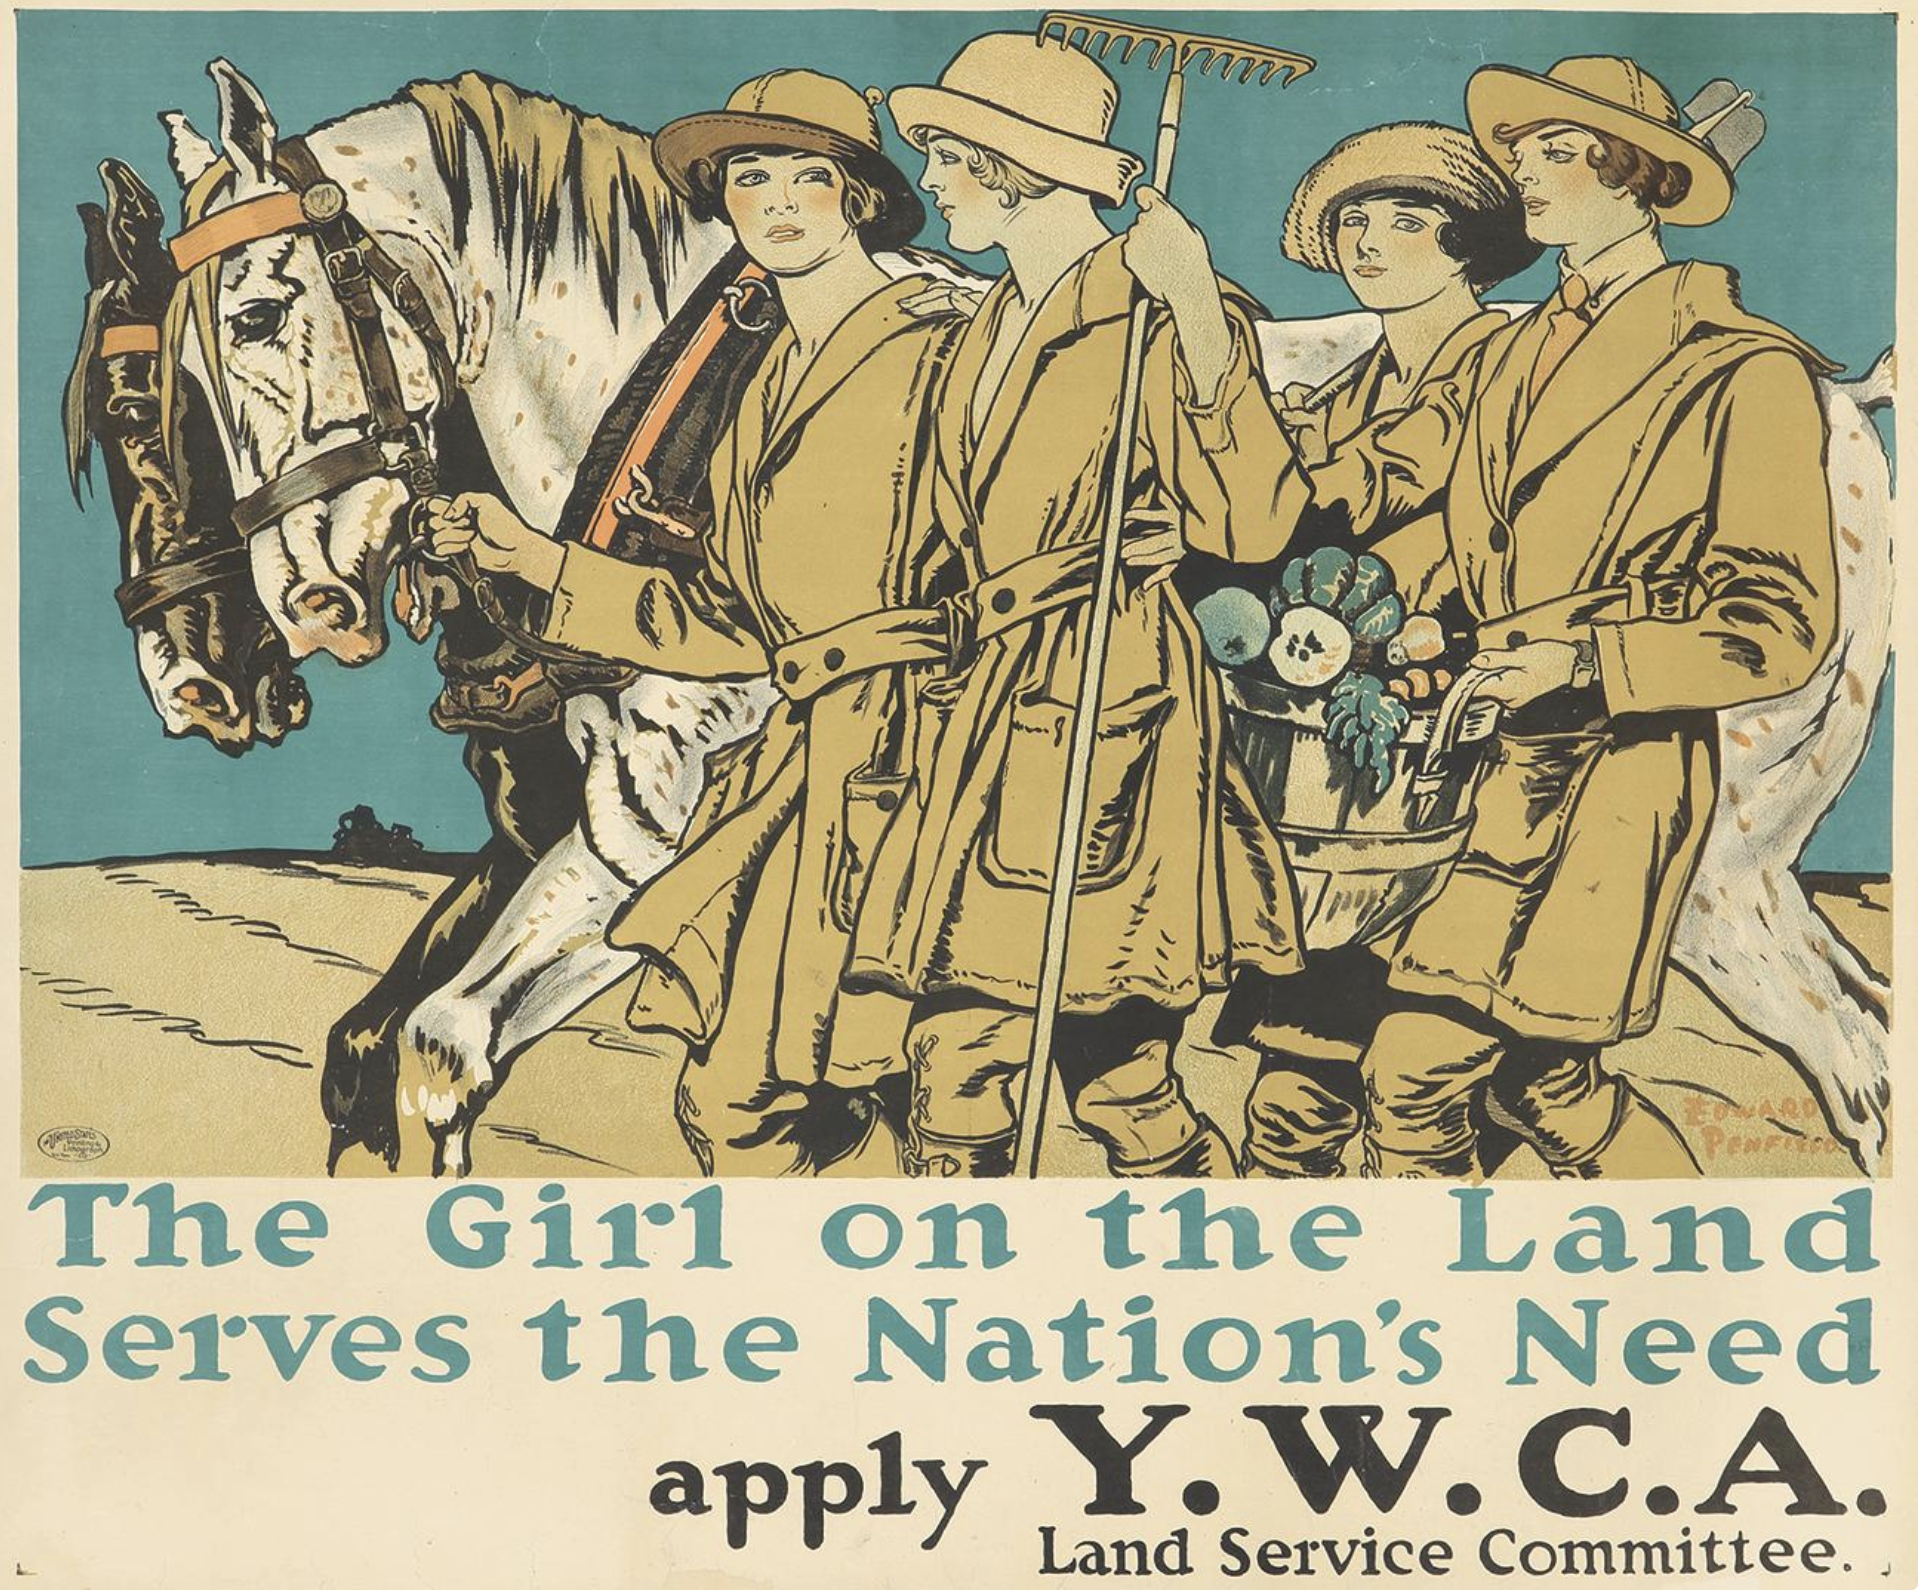 Edward Penfield, The Girl on the Land Serves the Nation's Need, poster design, YWCA Land Service Committee, 1918.